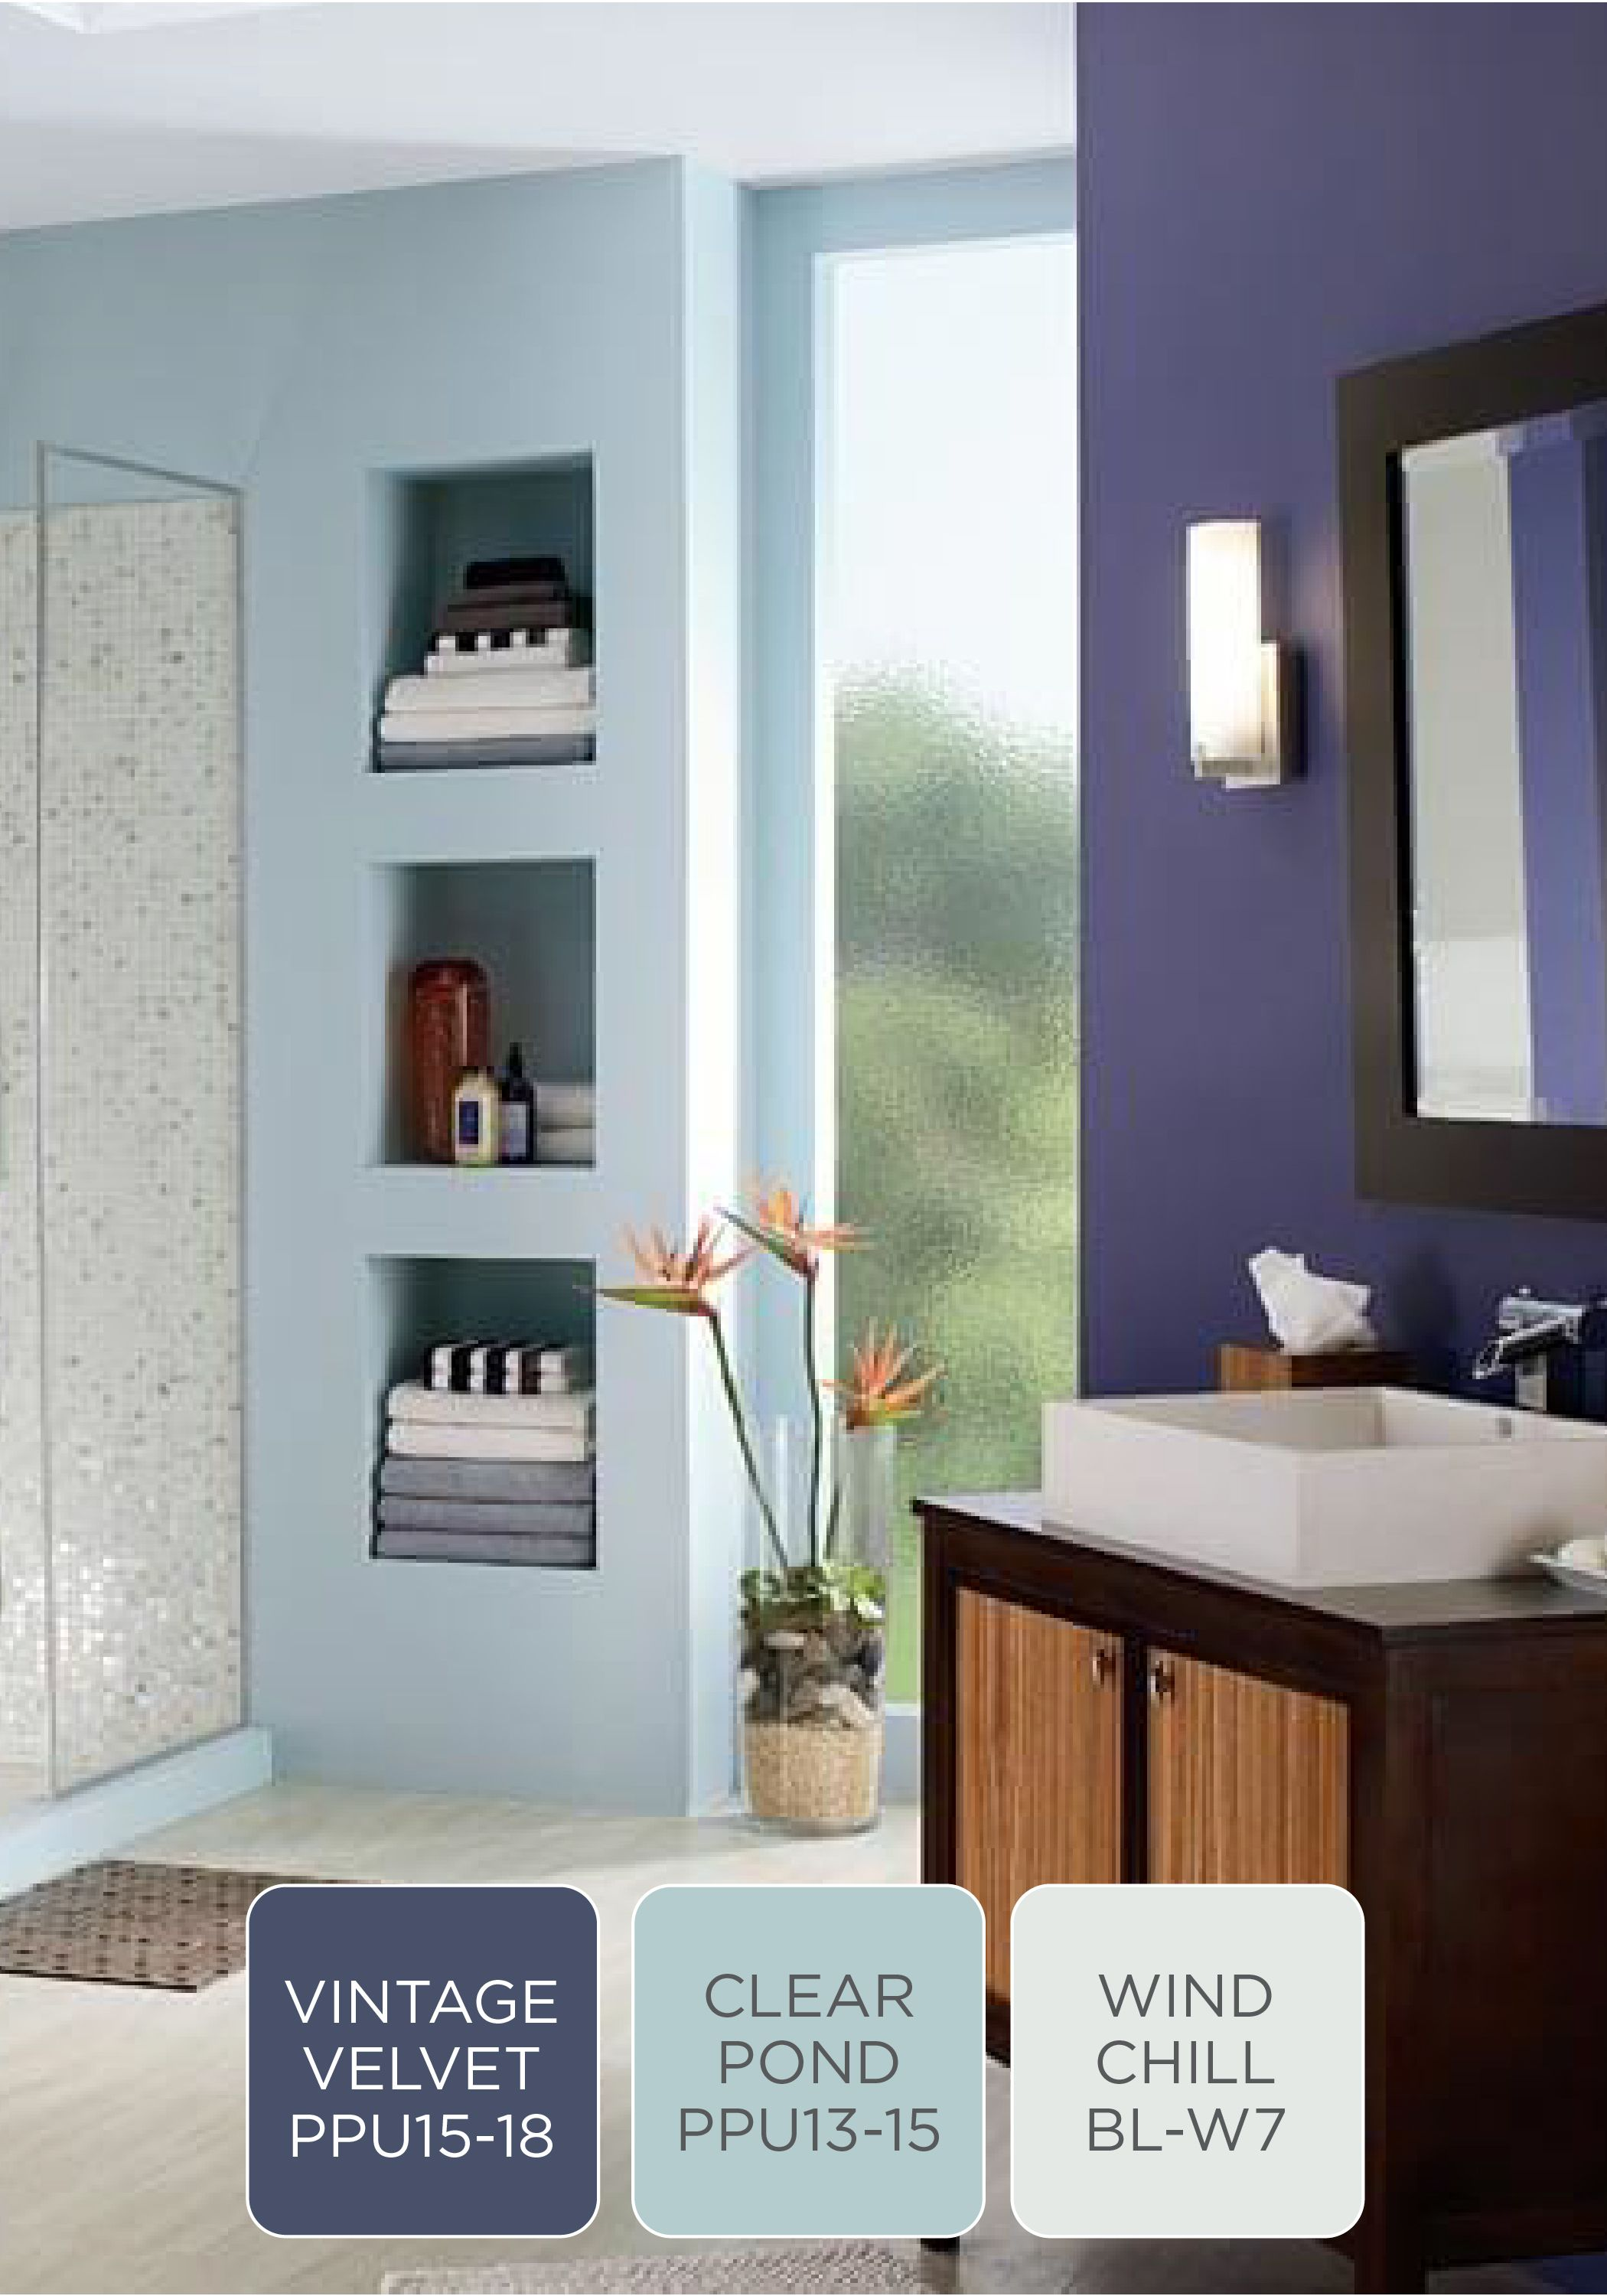 Searching for the perfect spa-like bathroom inspiration ...